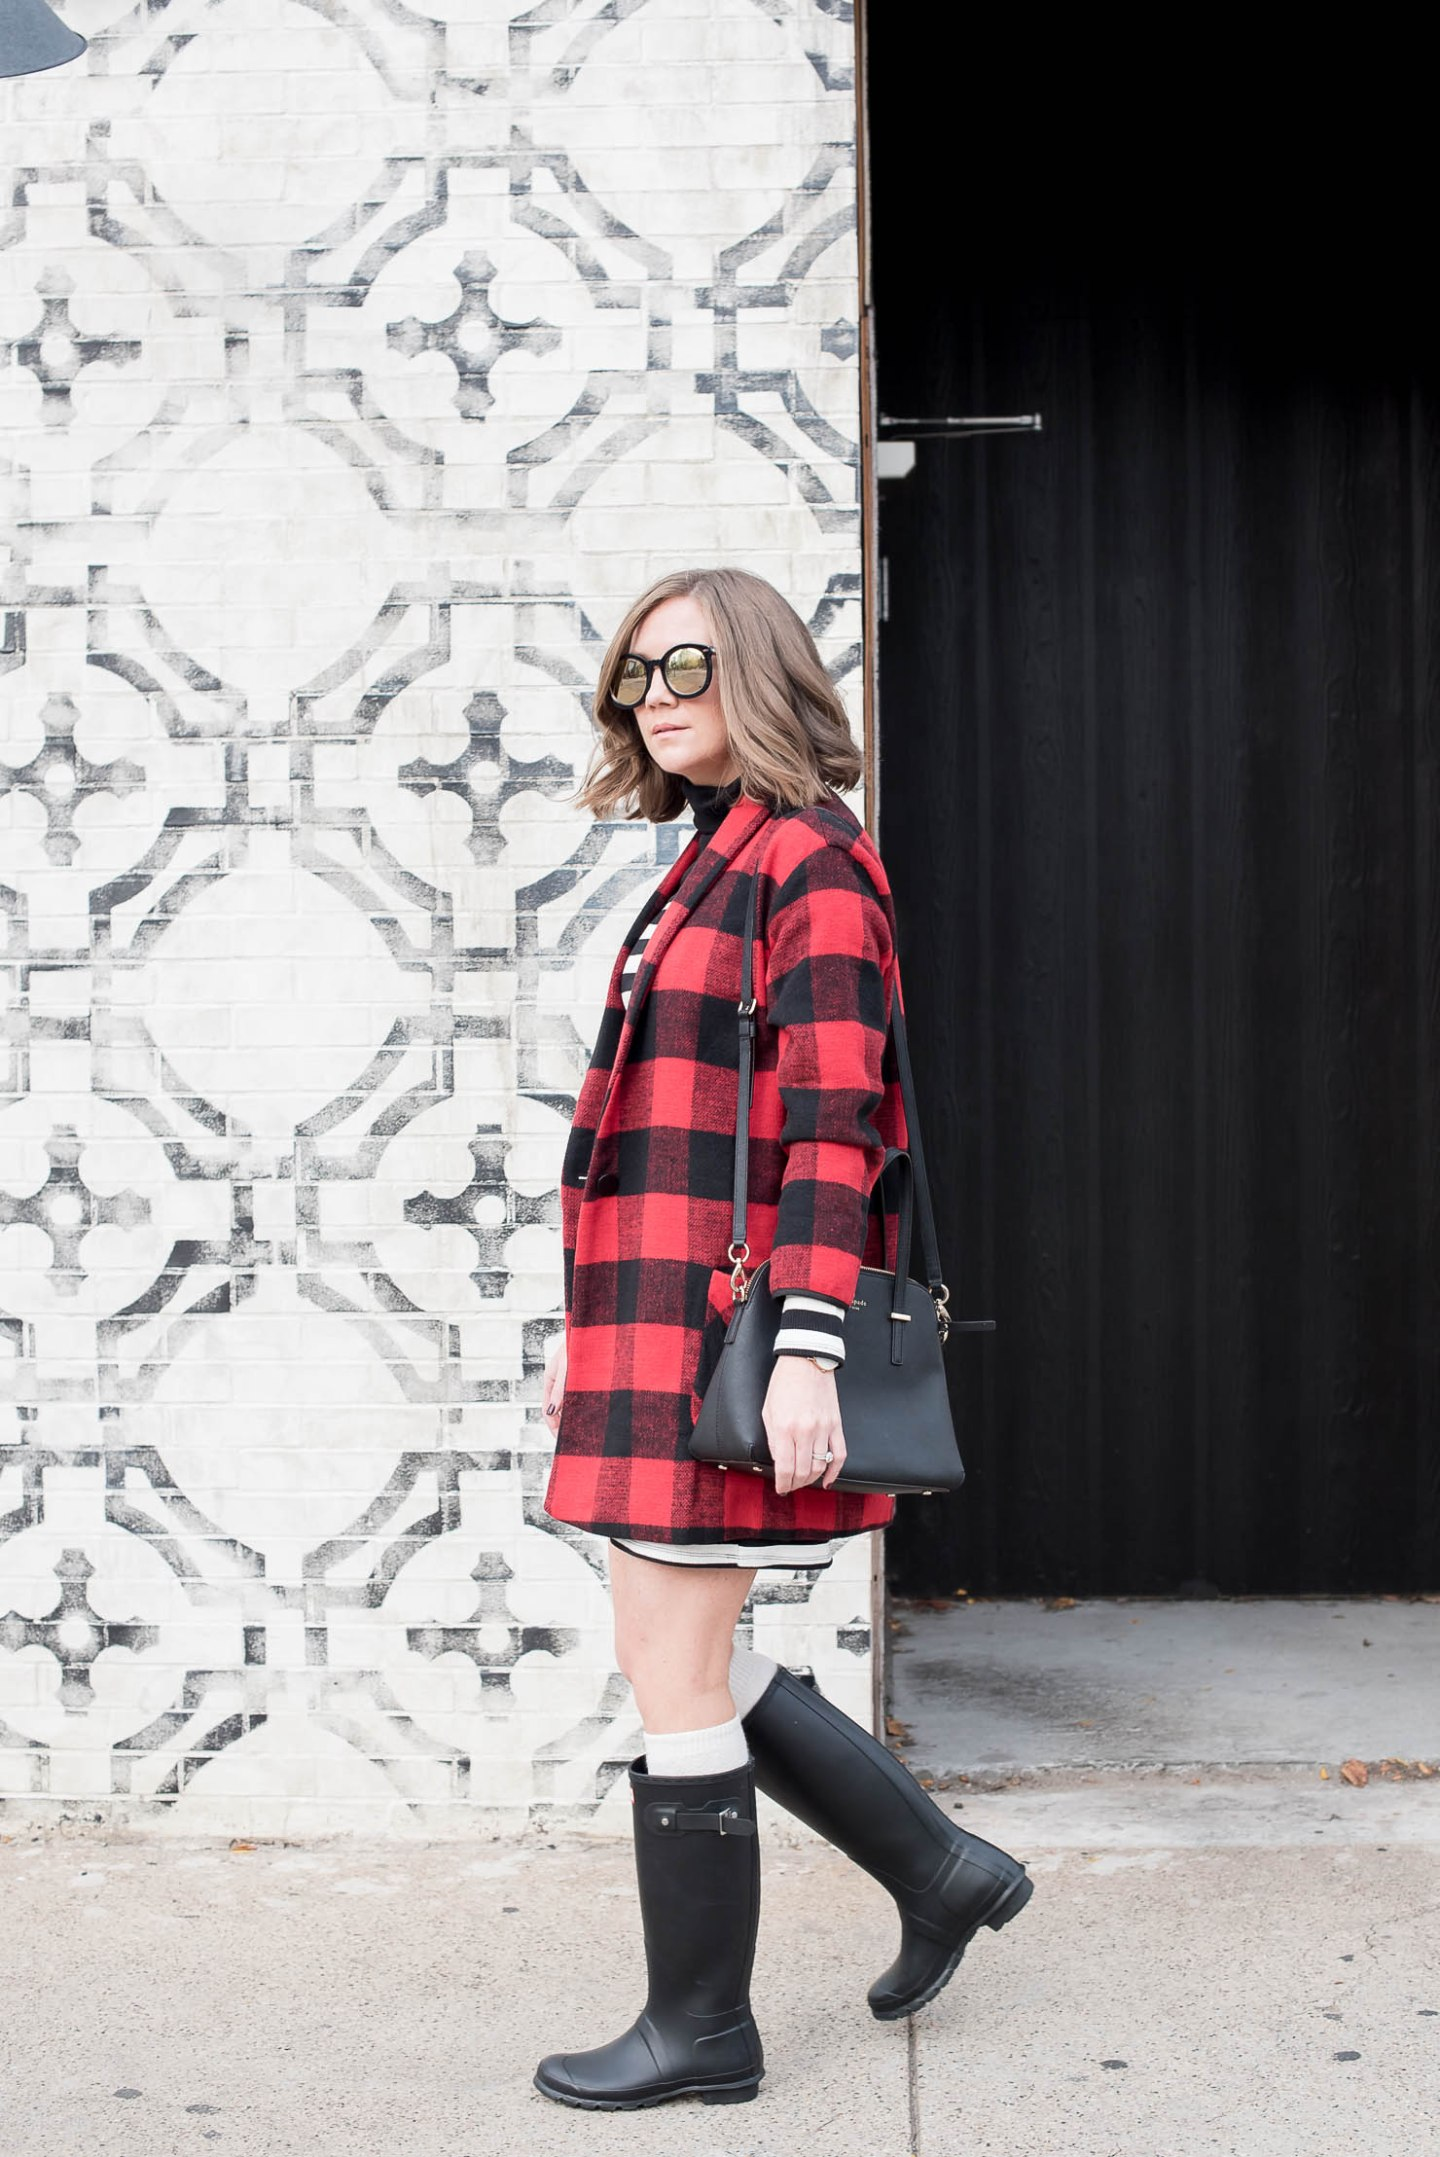 black-and-white-striped-mini-dress-and-red-buffalo-plaid-coat-with-hunter-boots-the-perfect-blogger-wall-for-photos-dowtown-chicago-mild-winter-outfit